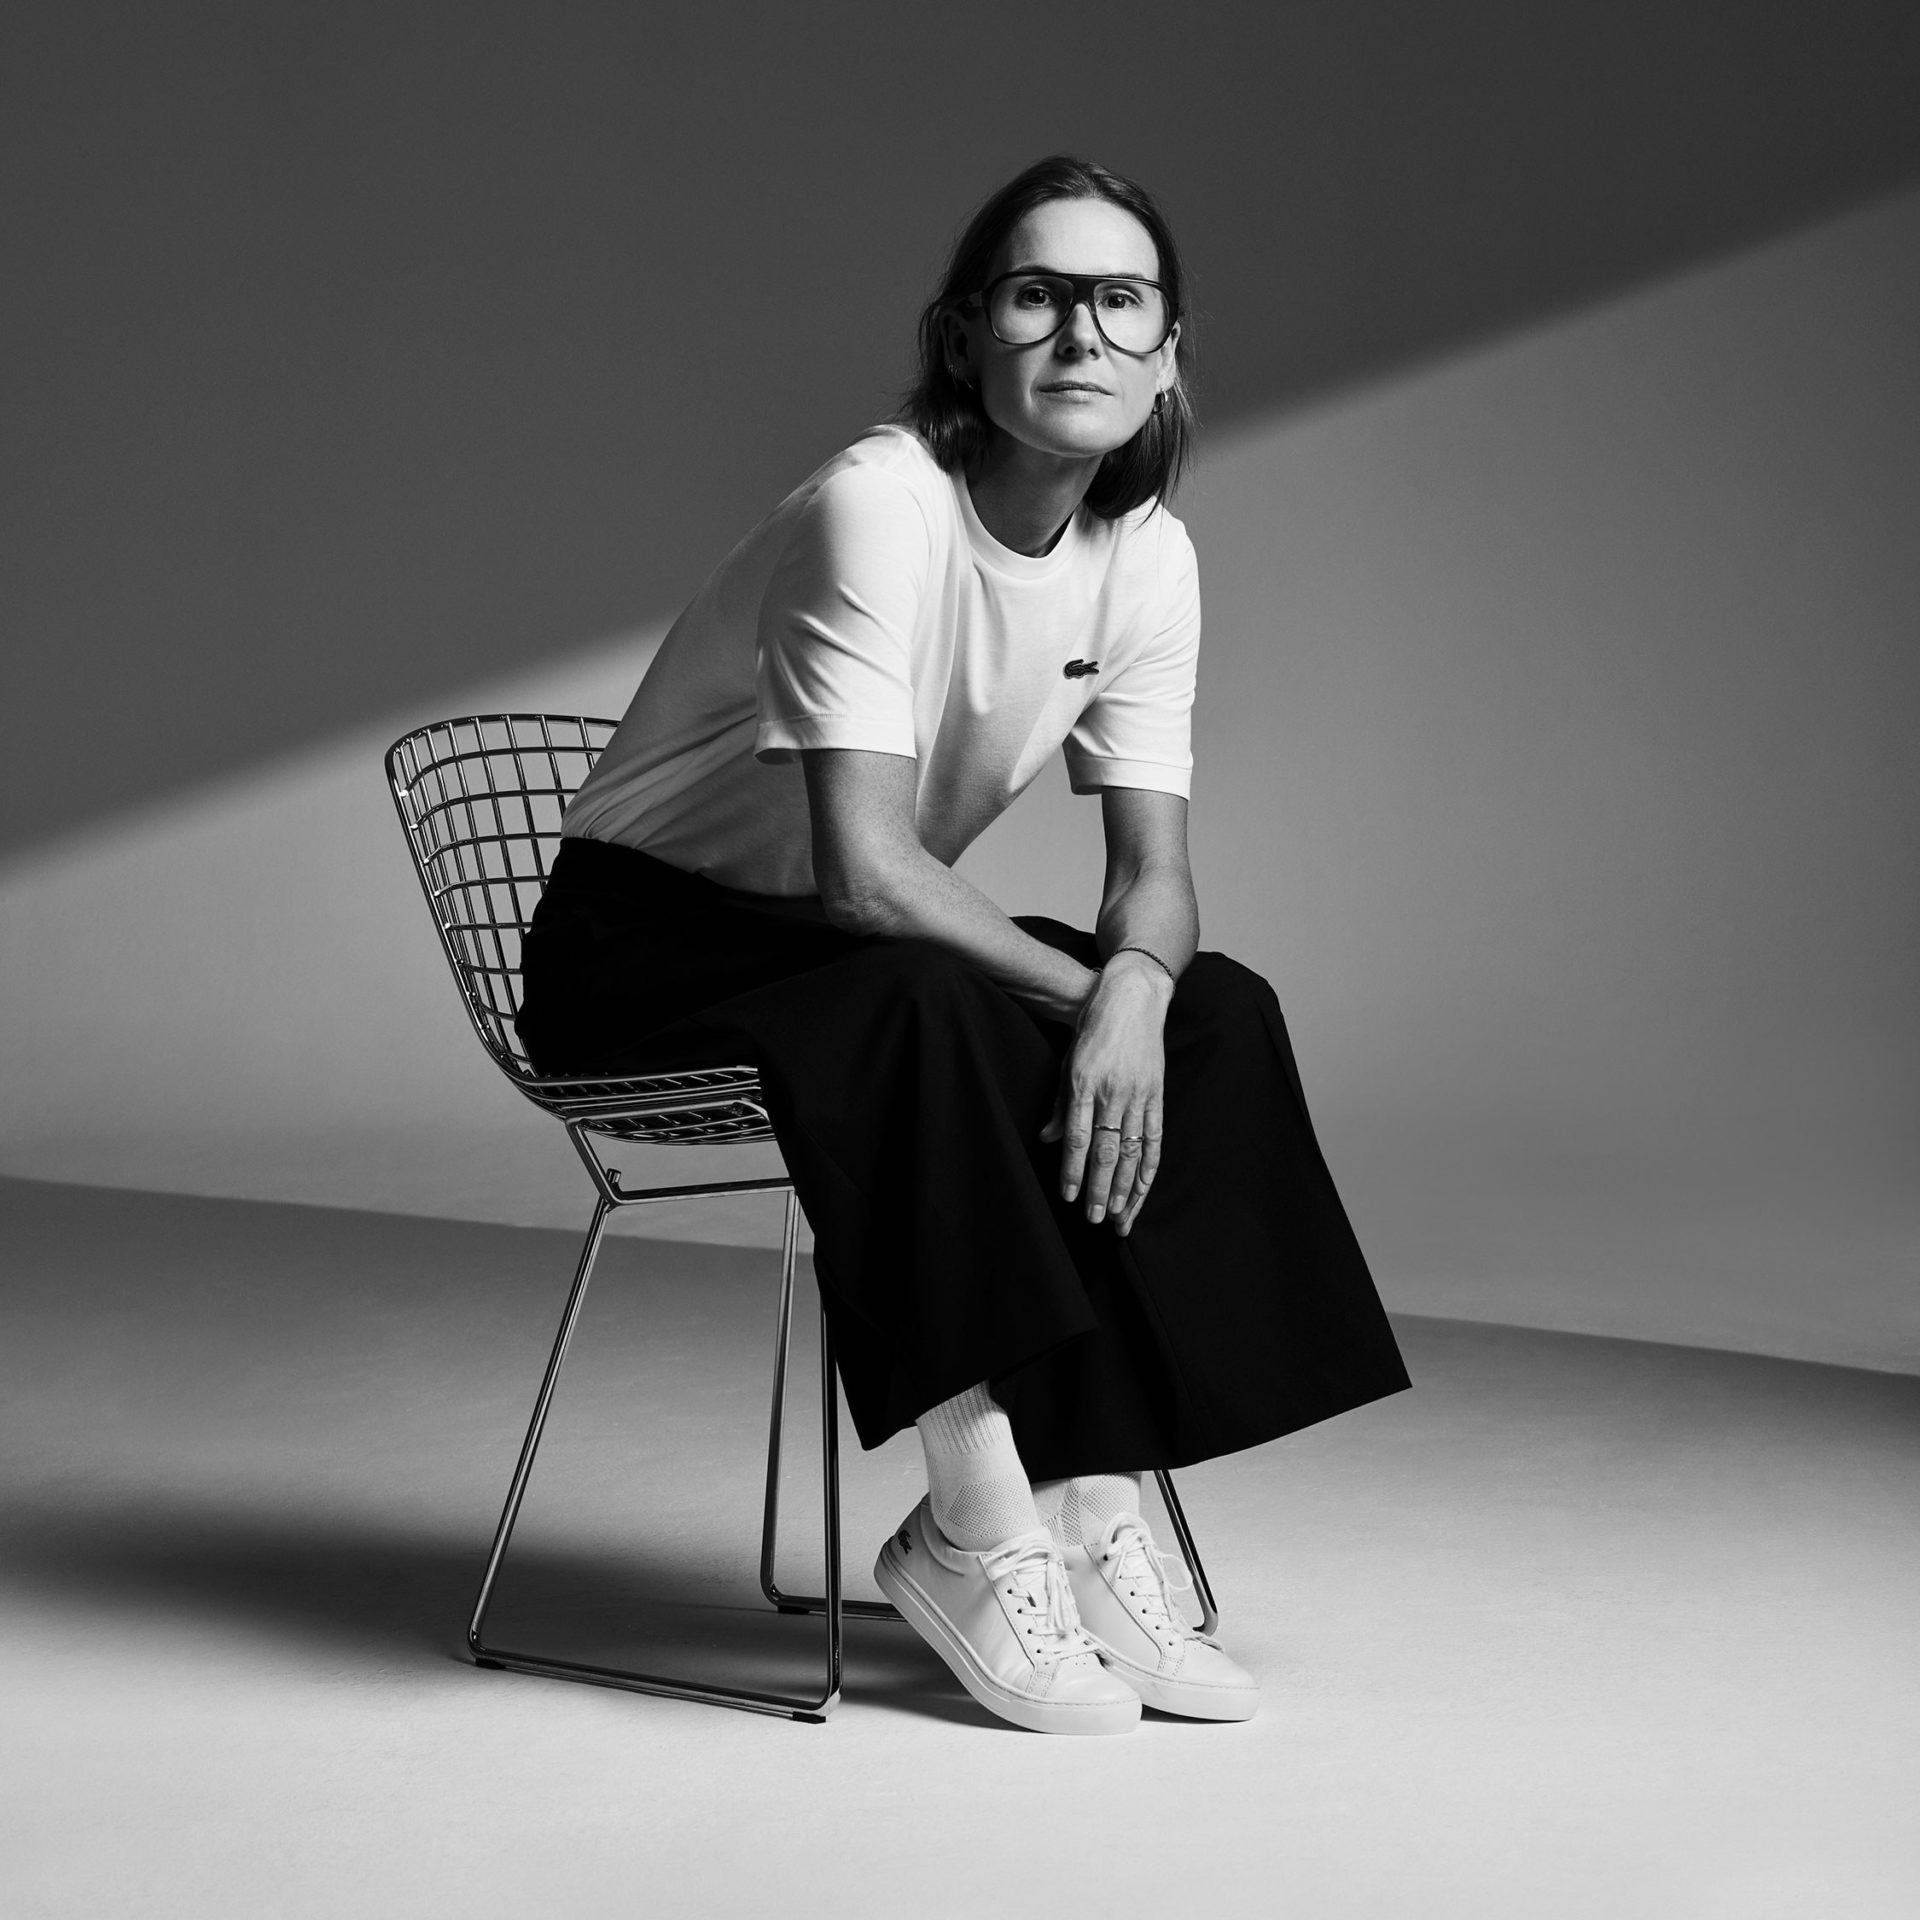 5d989c0ec Lacoste names Louise Trotter as its new Creative Director - Perfect ...